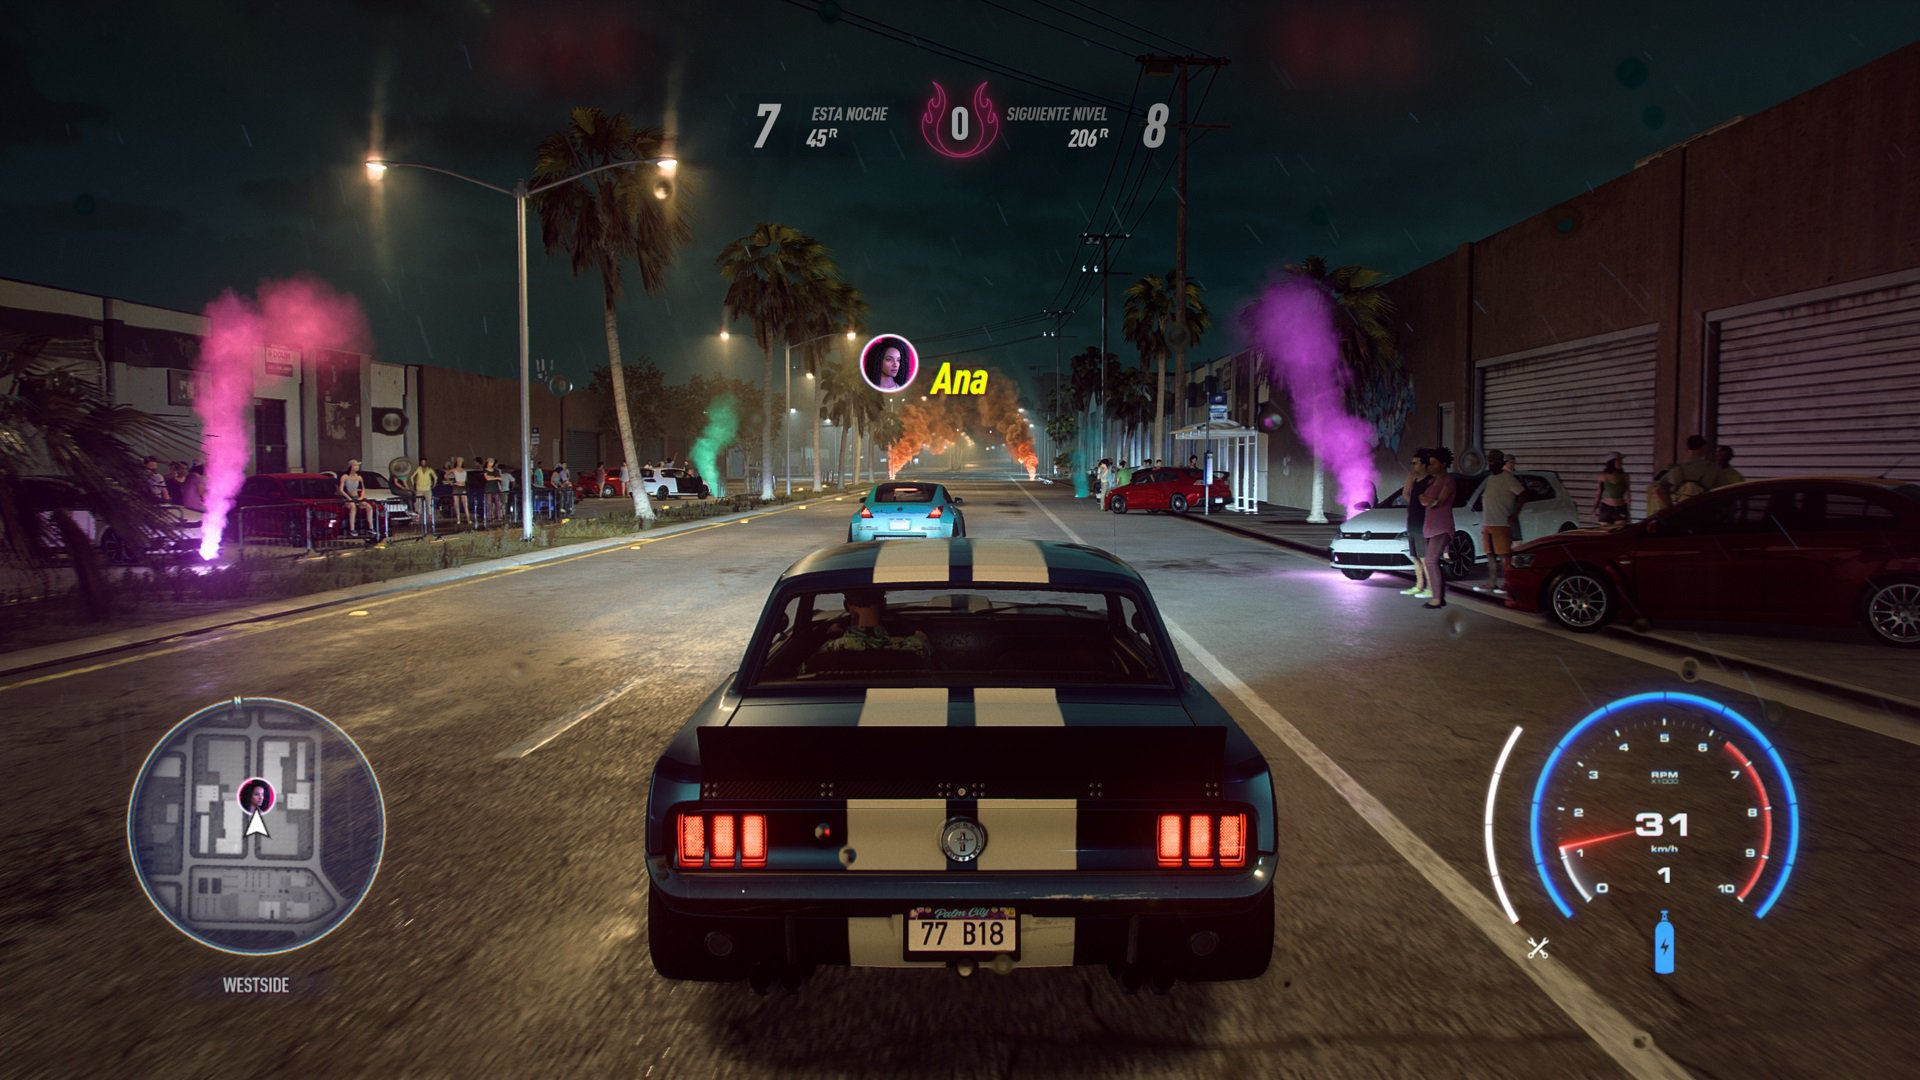 Análisis de Need for Speed: Heat